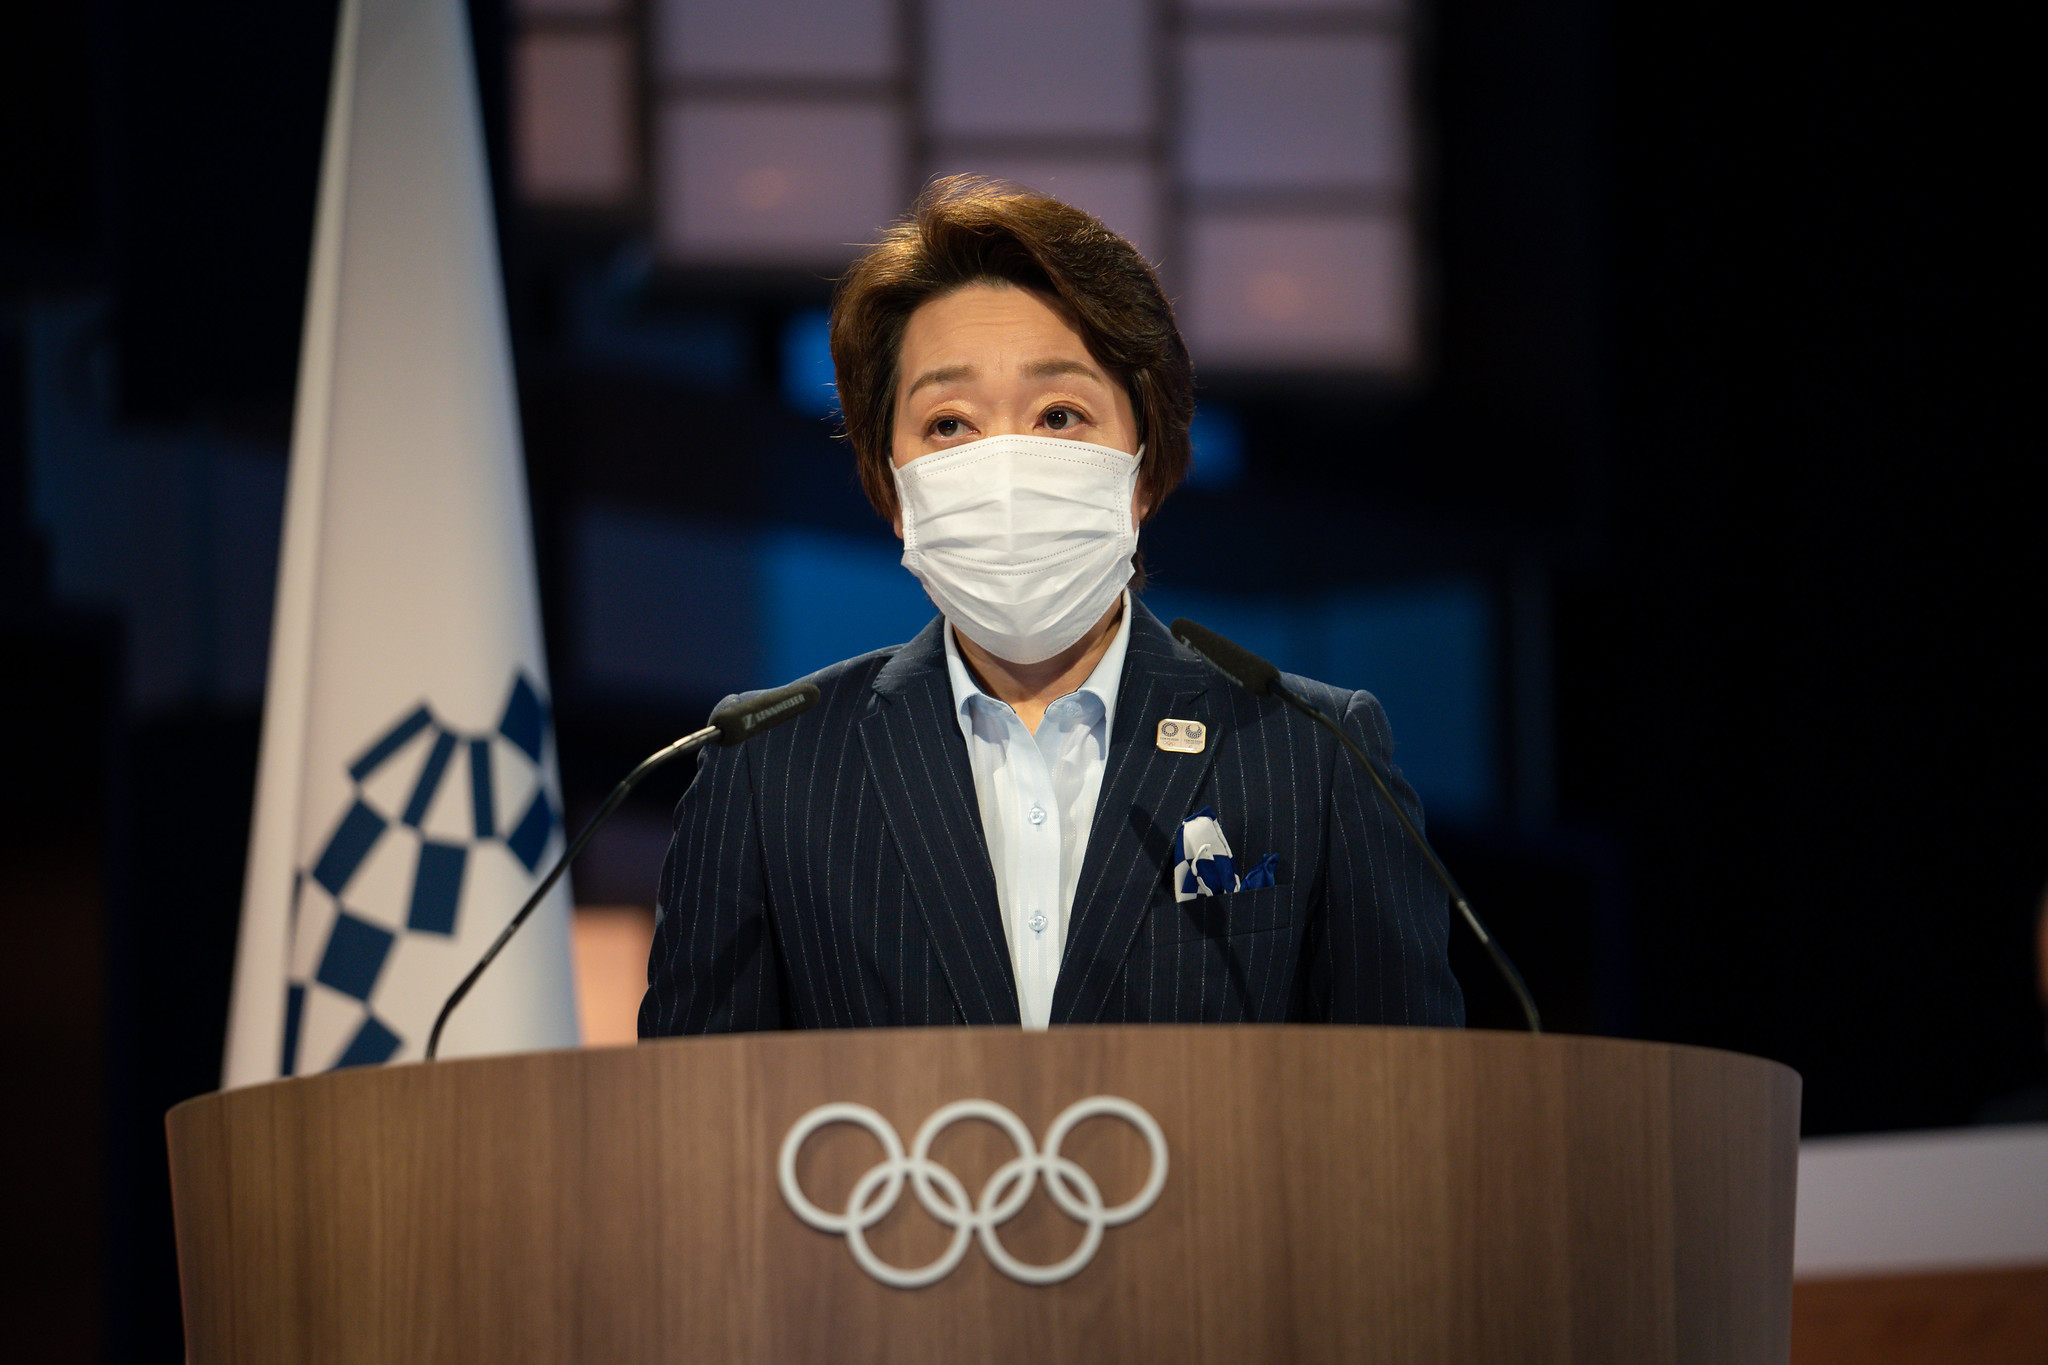 Tokyo 2020 President Seiko Hashimoto accepted responsibility for organisers' failure to properly vet those working on the Opening Ceremony ©IOC